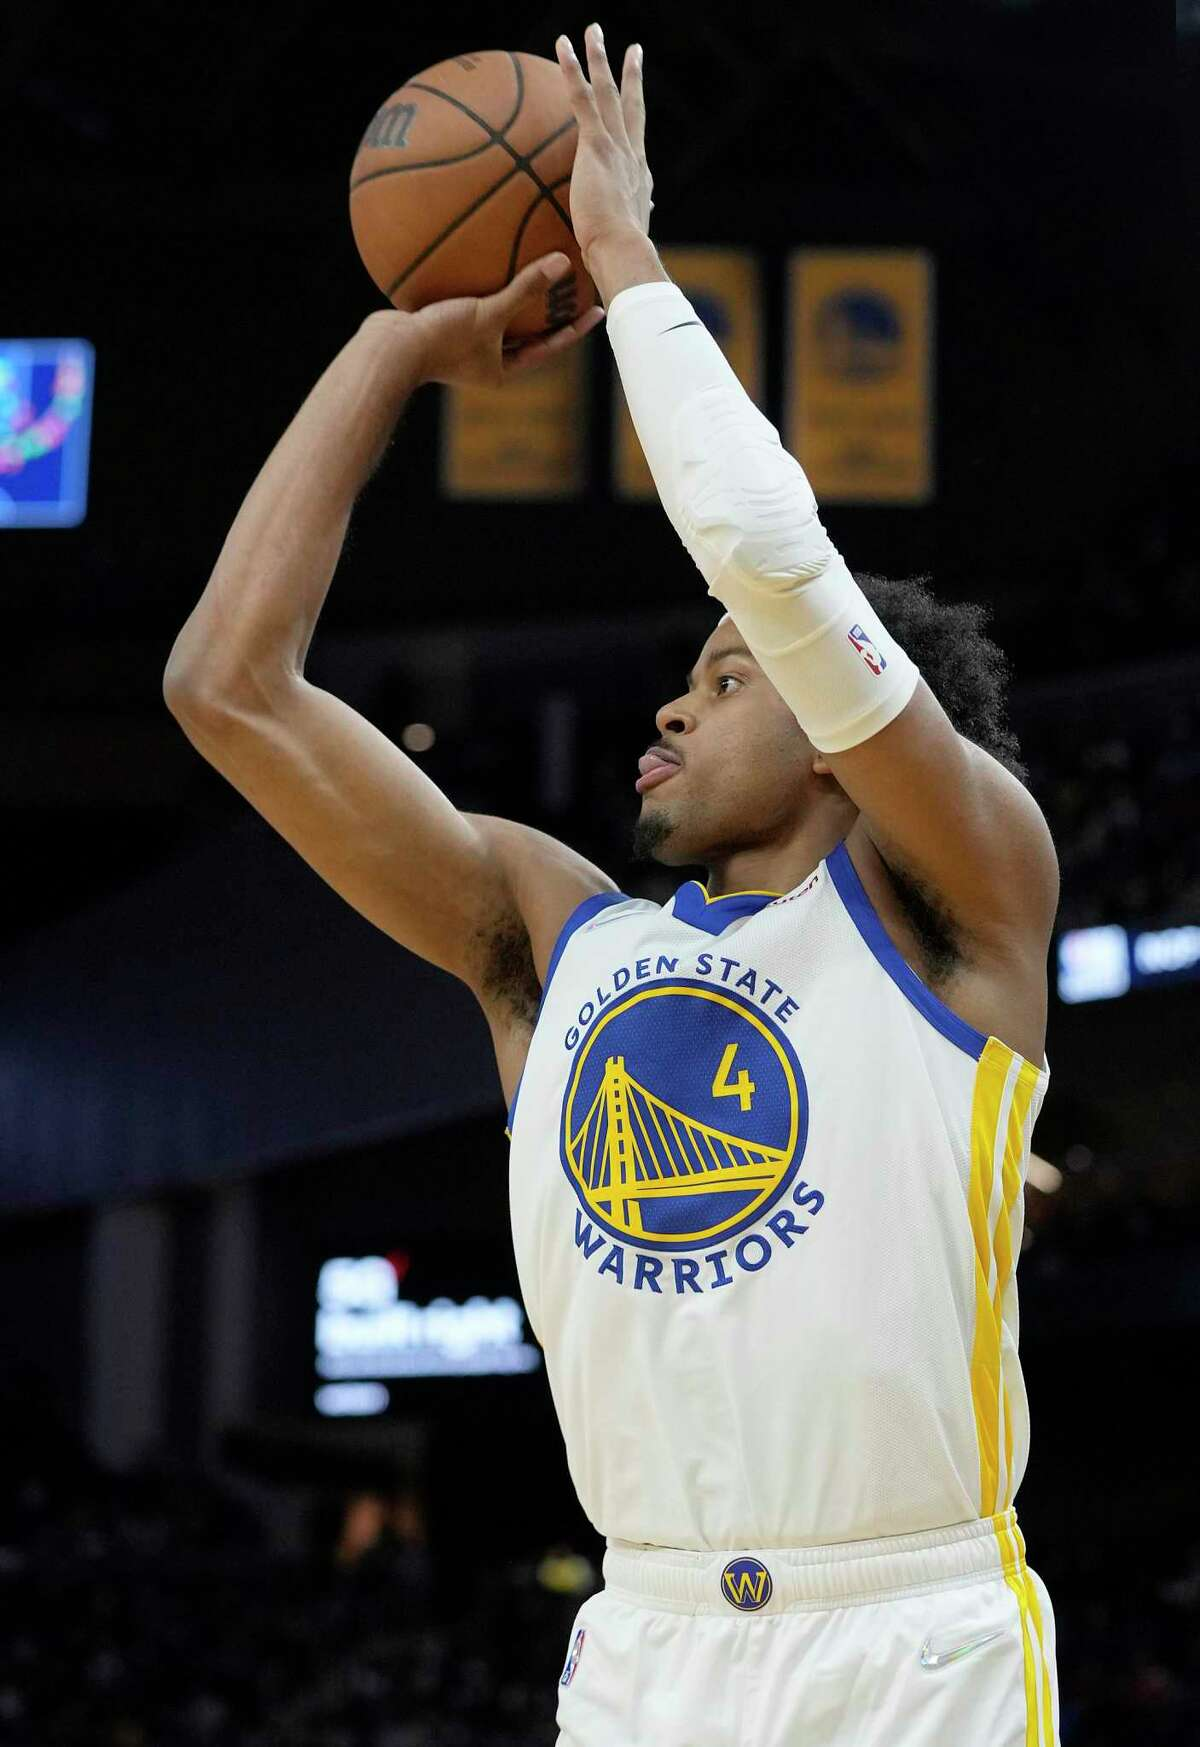 SAN FRANCISCO, CALIFORNIA - OCTOBER 08: Moses Moody #4 of the Golden State Warriors shoots a three-point shot against the Los Angeles Lakers at Chase Center on October 08, 2021 in San Francisco, California. NOTE TO USER: User expressly acknowledges and agrees that, by downloading and/or using this photograph, User is consenting to the terms and conditions of the Getty Images License Agreement. (Photo by Thearon W. Henderson/Getty Images)